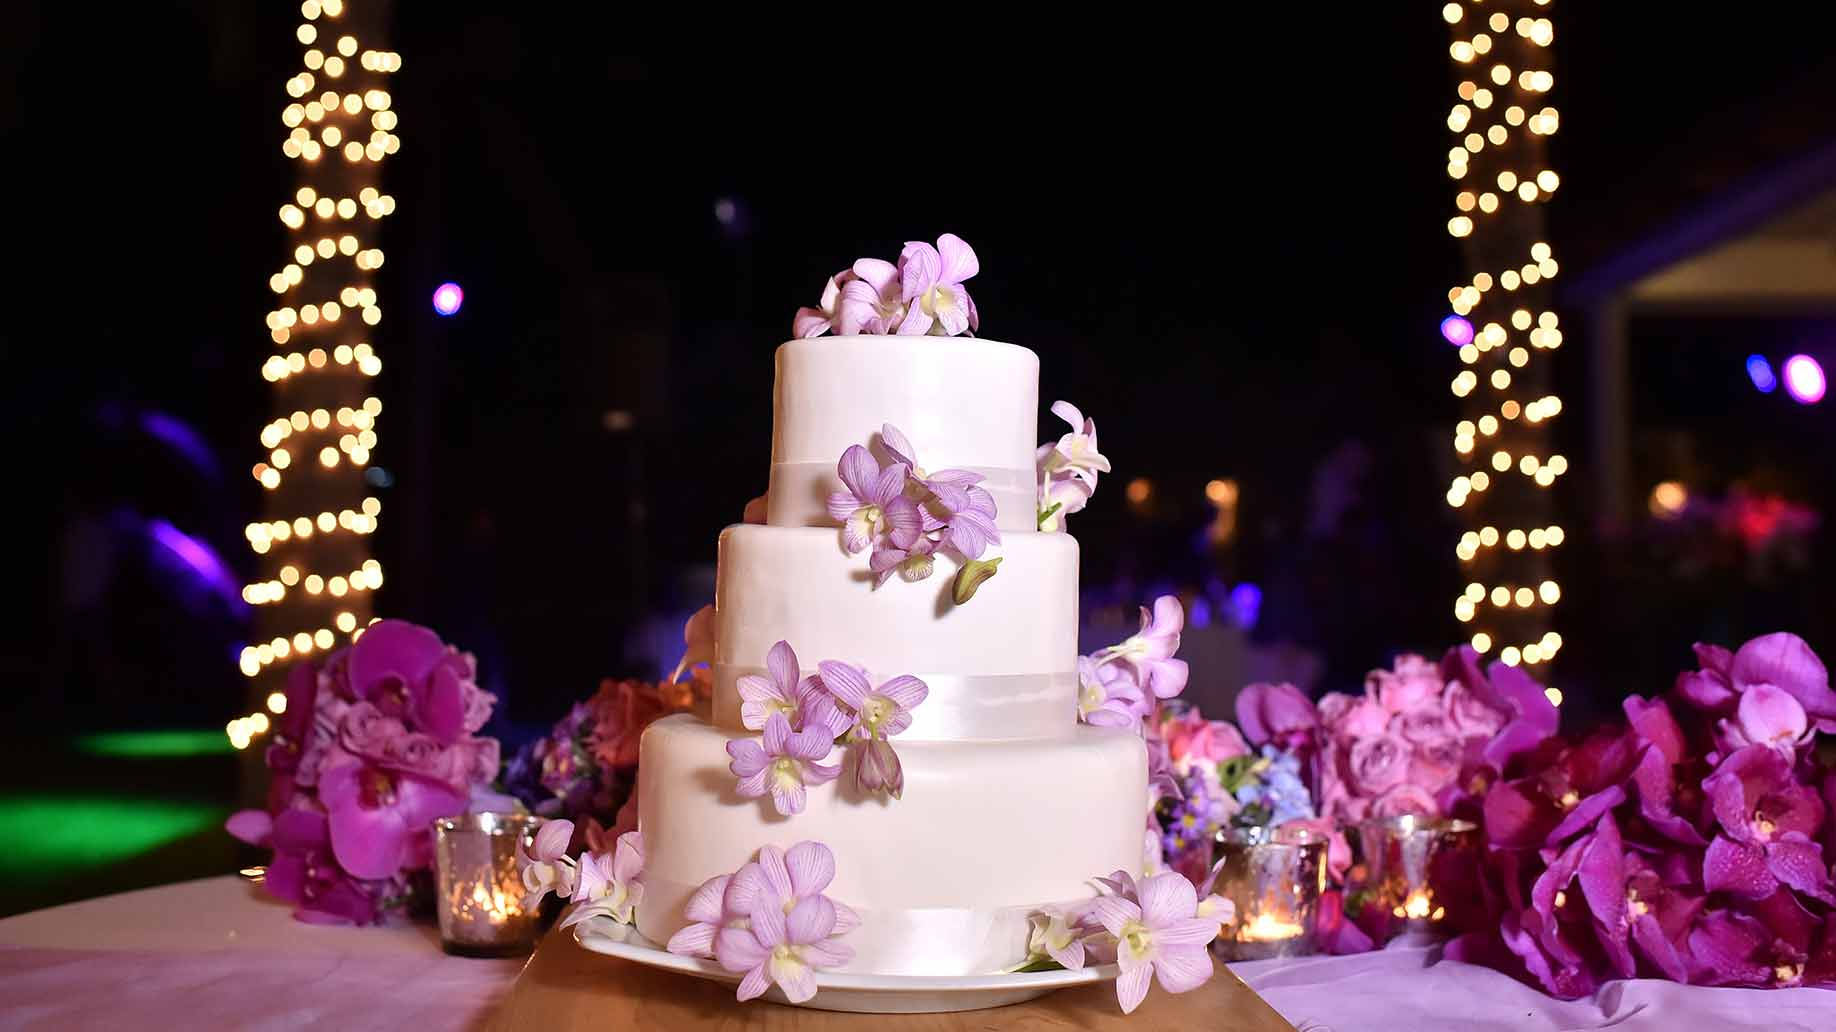 How Much Does a Wedding Cake Cost   Ideas   Prices How Much Does a Wedding Cake Cost     Ideas   Prices